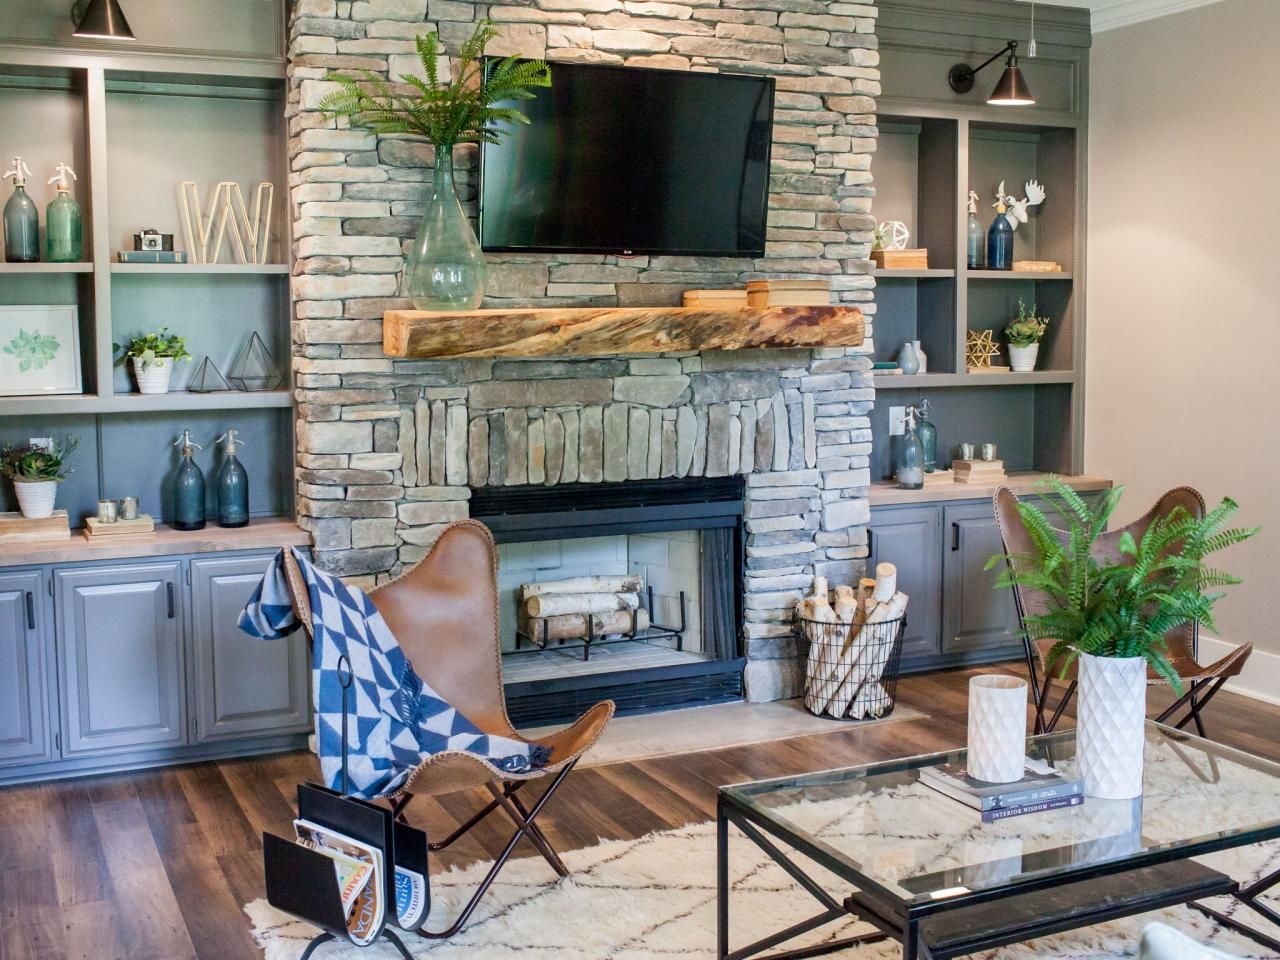 Joanna Gaines Farmhouse Mantel Find The Best Of Hgtv 39s Fixer Upper With Chip And Joanna